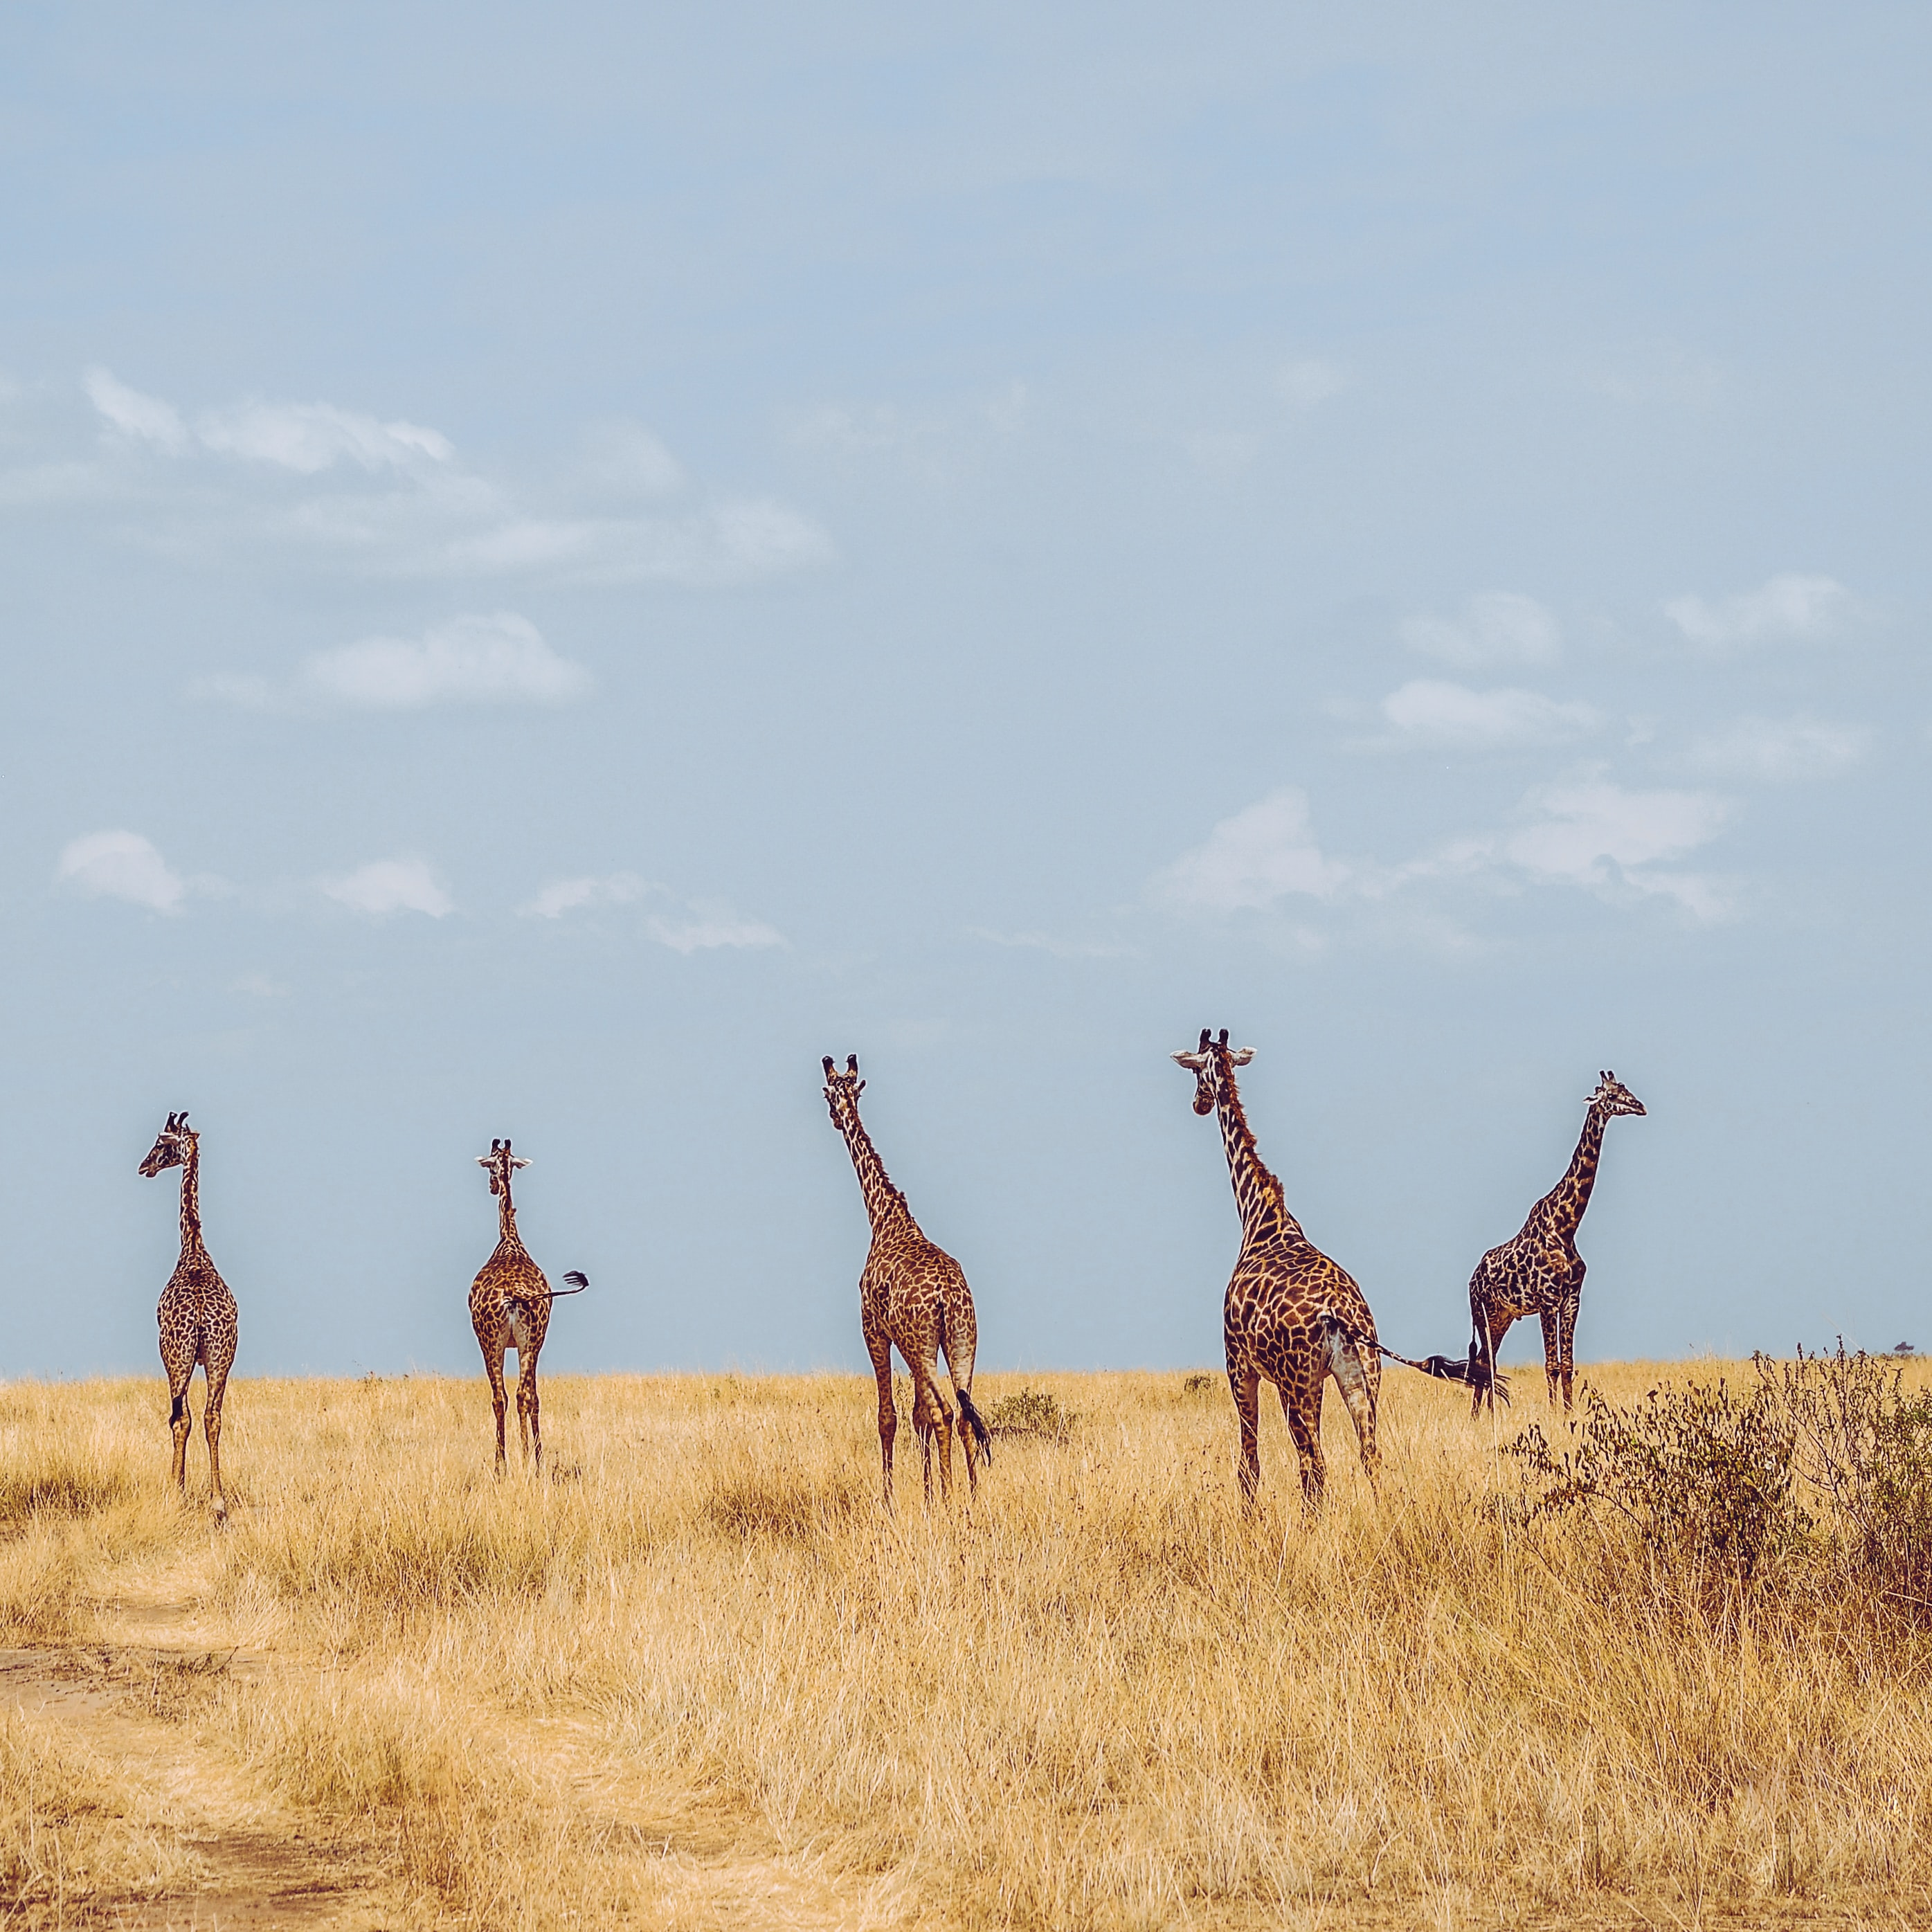 five giraffes on grass field during daytime